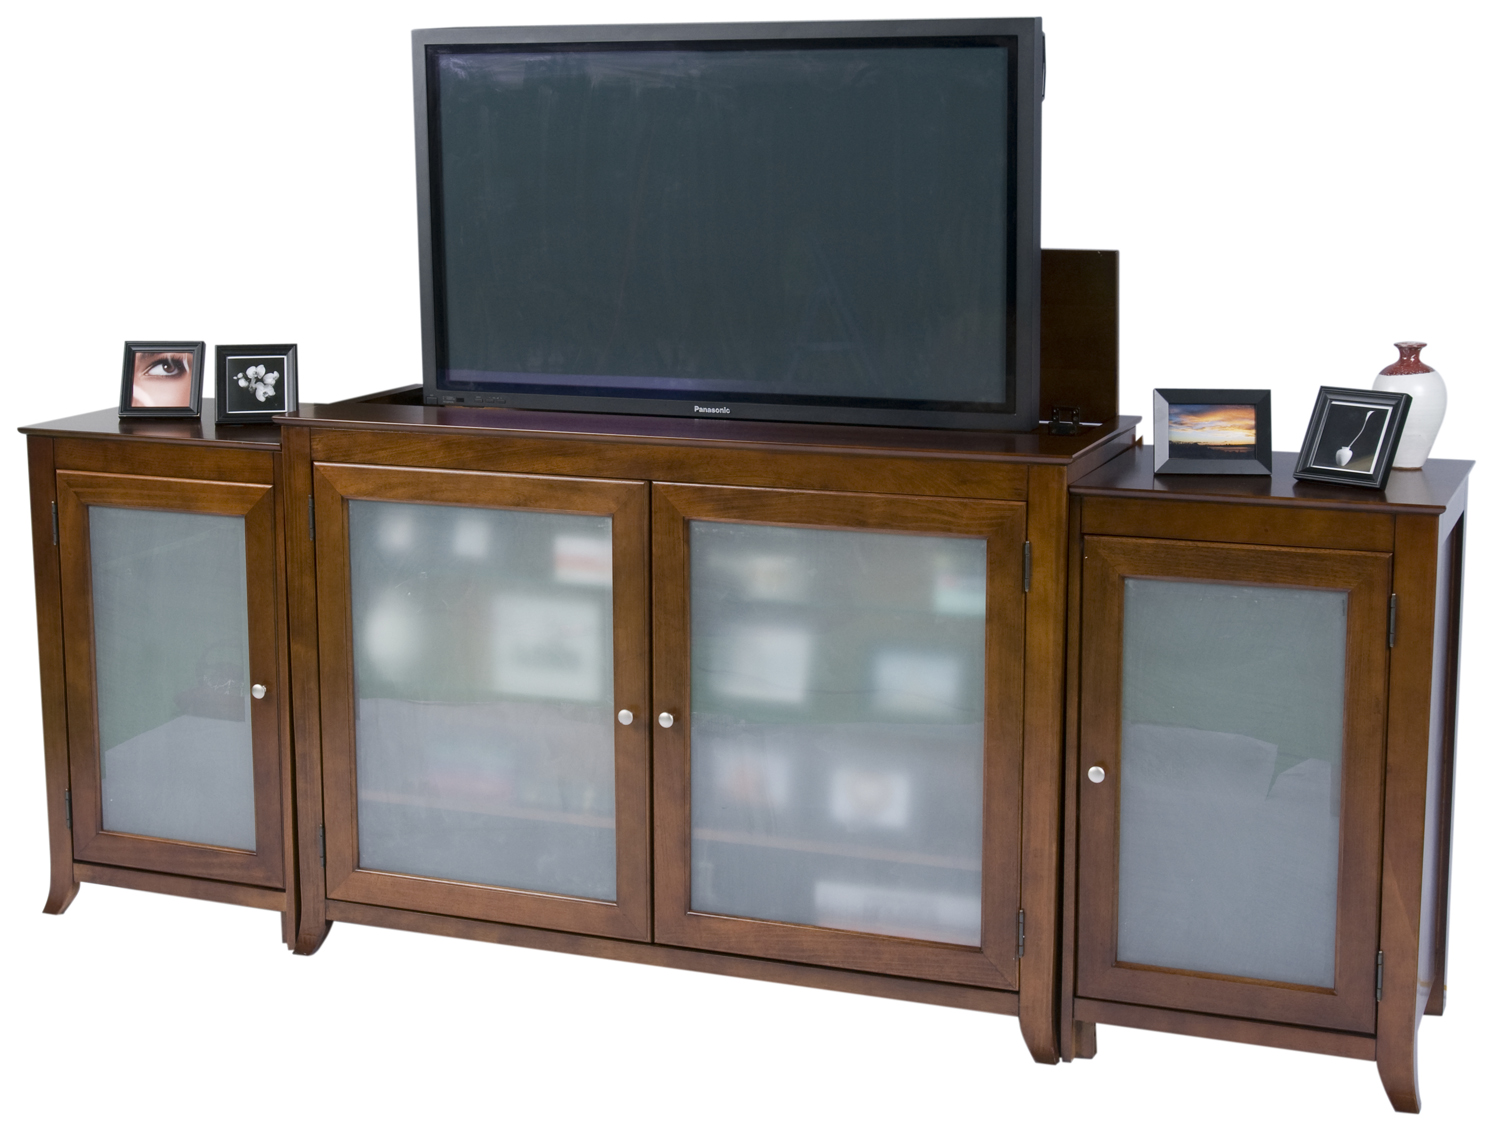 brookside cherry tv lift cabinet with sides for flat screen tvs up to 60. Black Bedroom Furniture Sets. Home Design Ideas